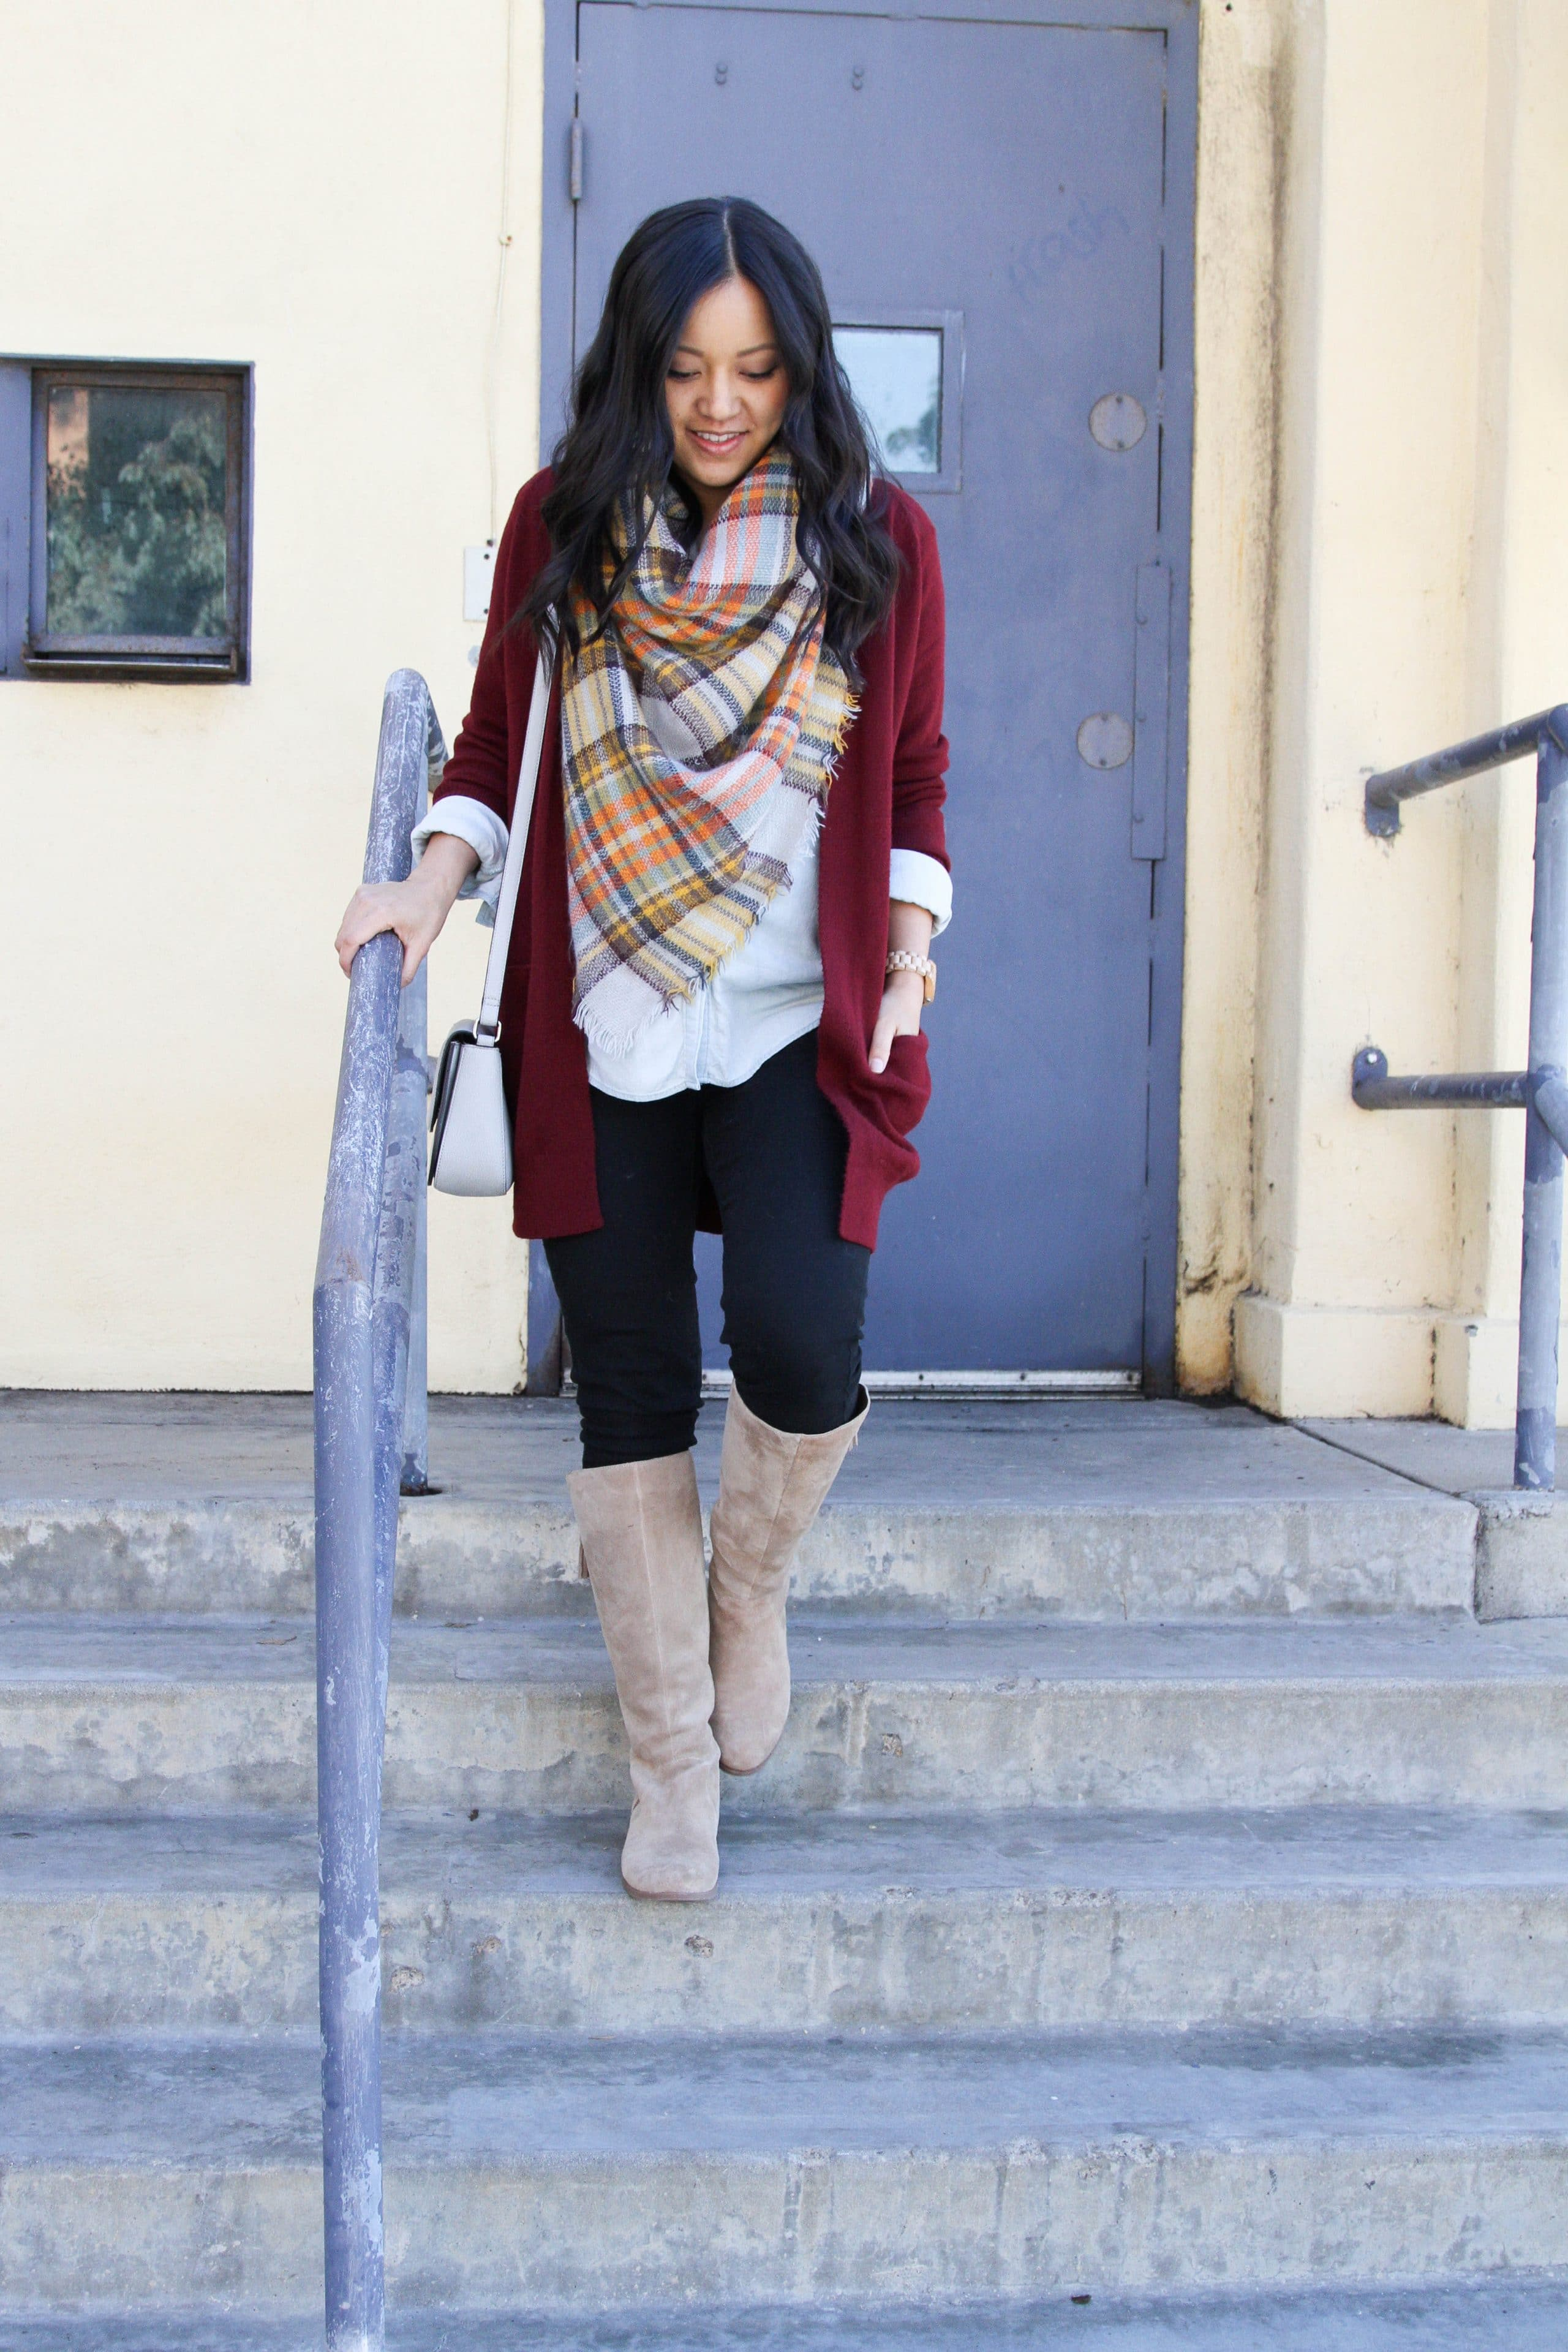 Blanket scarf + maroon cardigan + white blouse + skinnies + boots